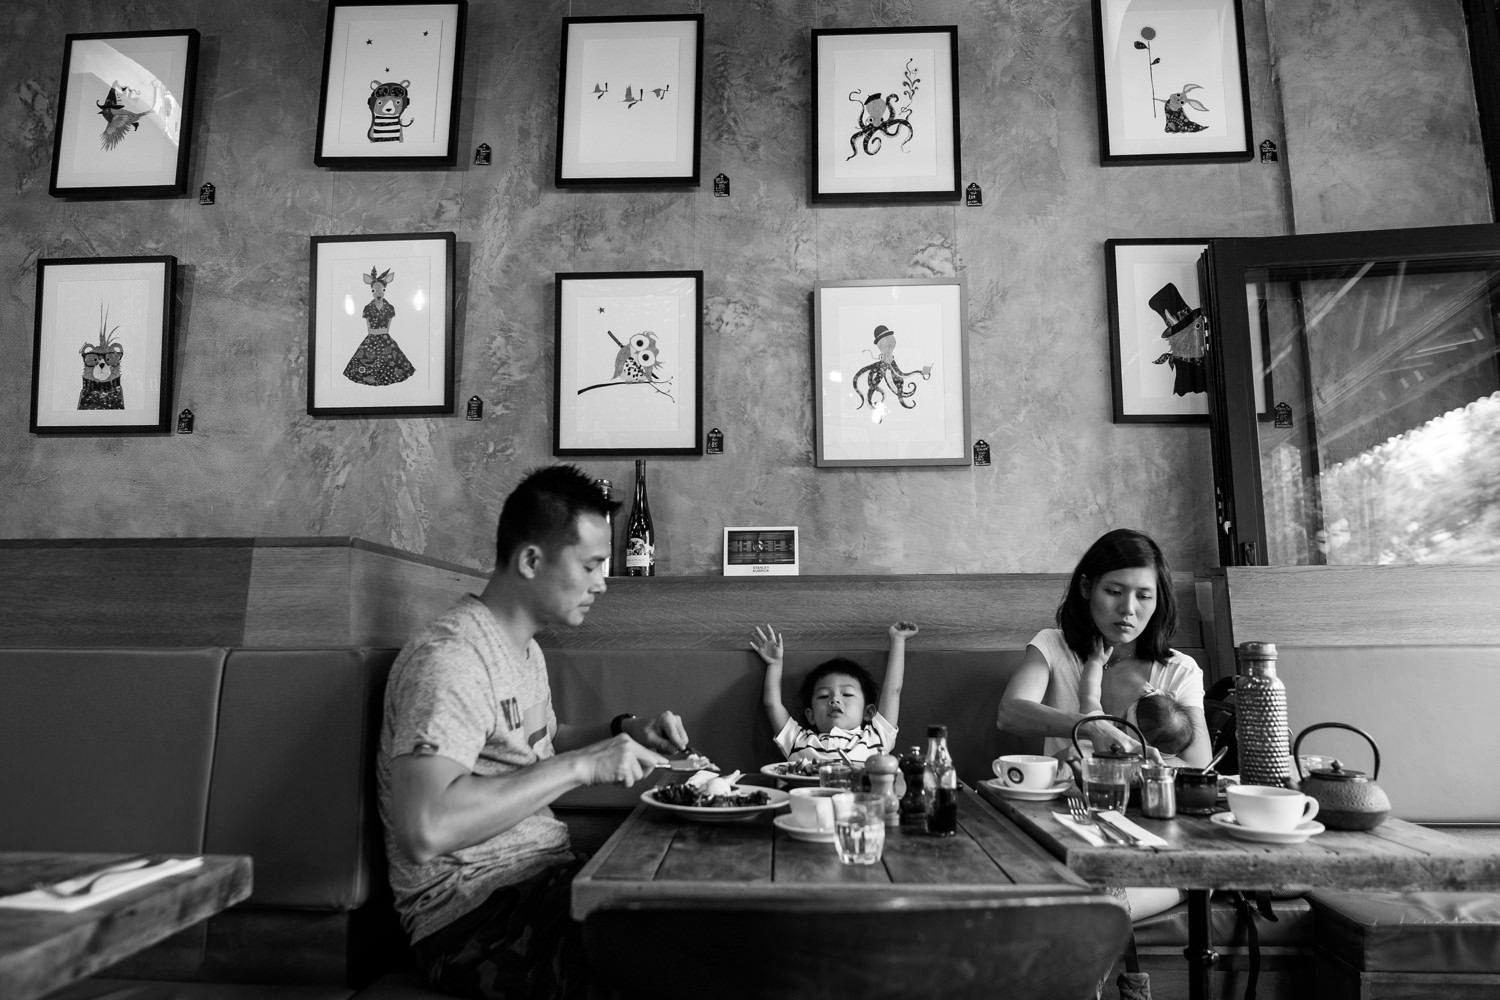 a black and white photograph of a family having breakfast in a cafe in Kensington